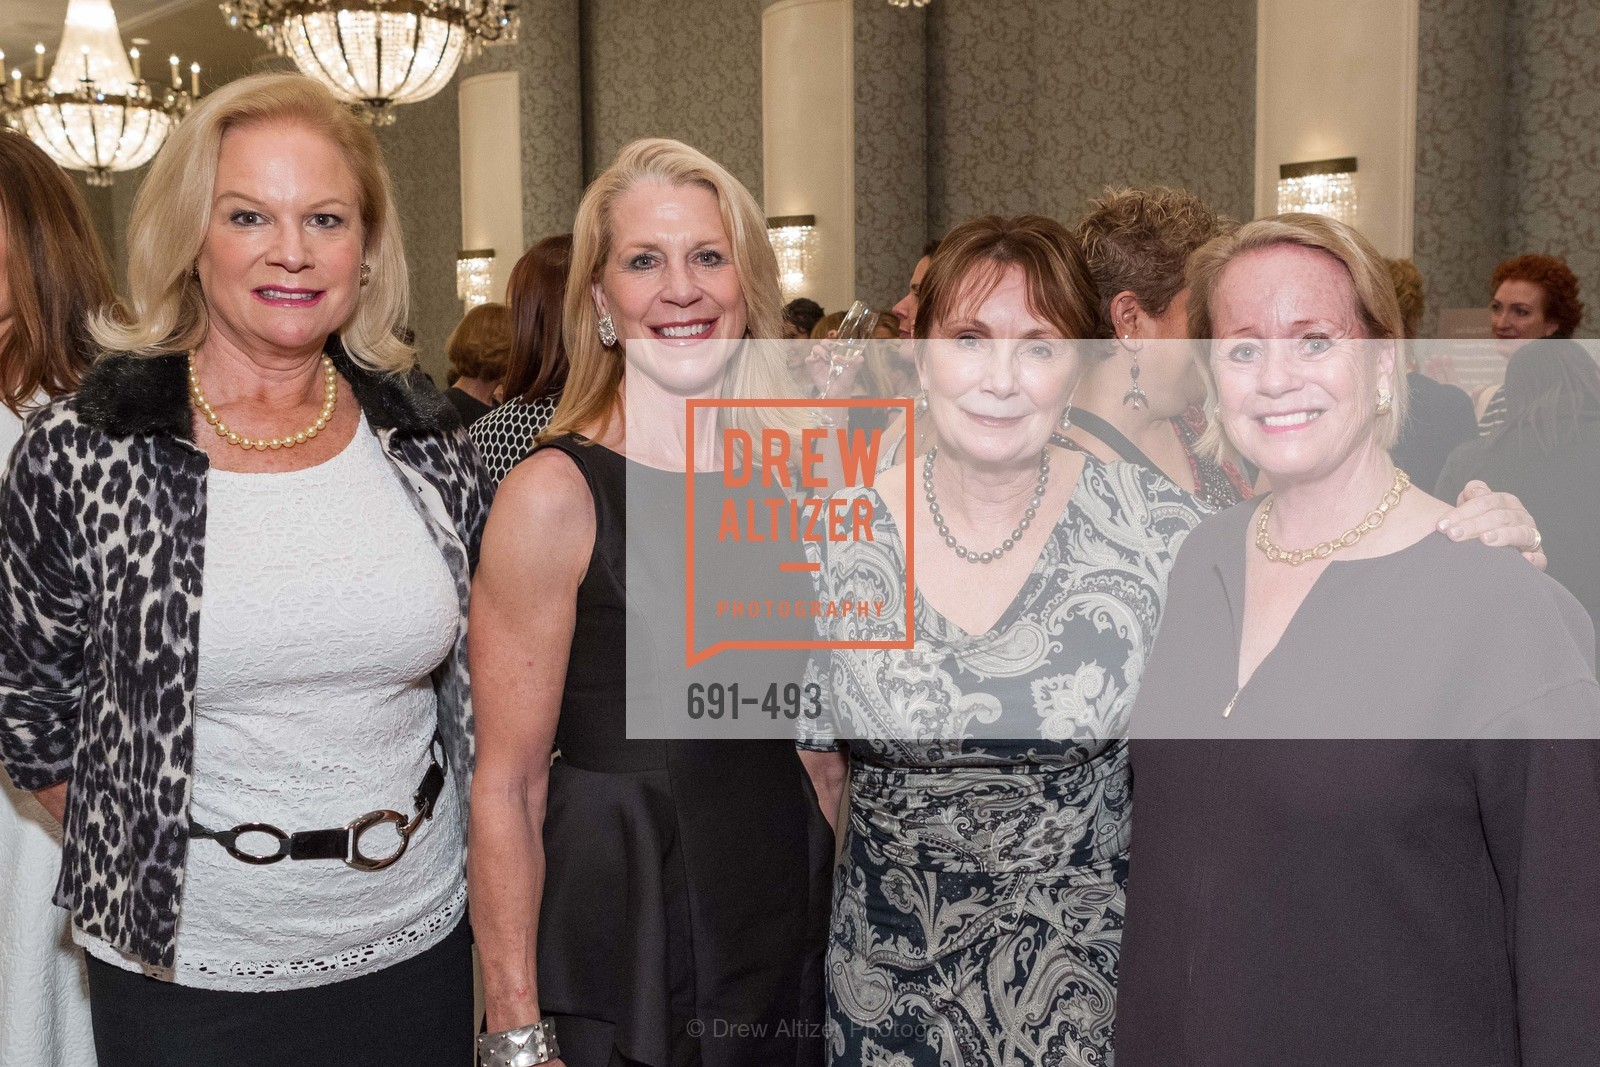 Claire Kostic, Kimberly Hopper, Lorraine Gordon, Jane Witter, SAN FRANCISCO BALLET AUXULIARY 2014 Fashion Show, US. The Fairmont, April 3rd, 2014,Drew Altizer, Drew Altizer Photography, full-service agency, private events, San Francisco photographer, photographer california